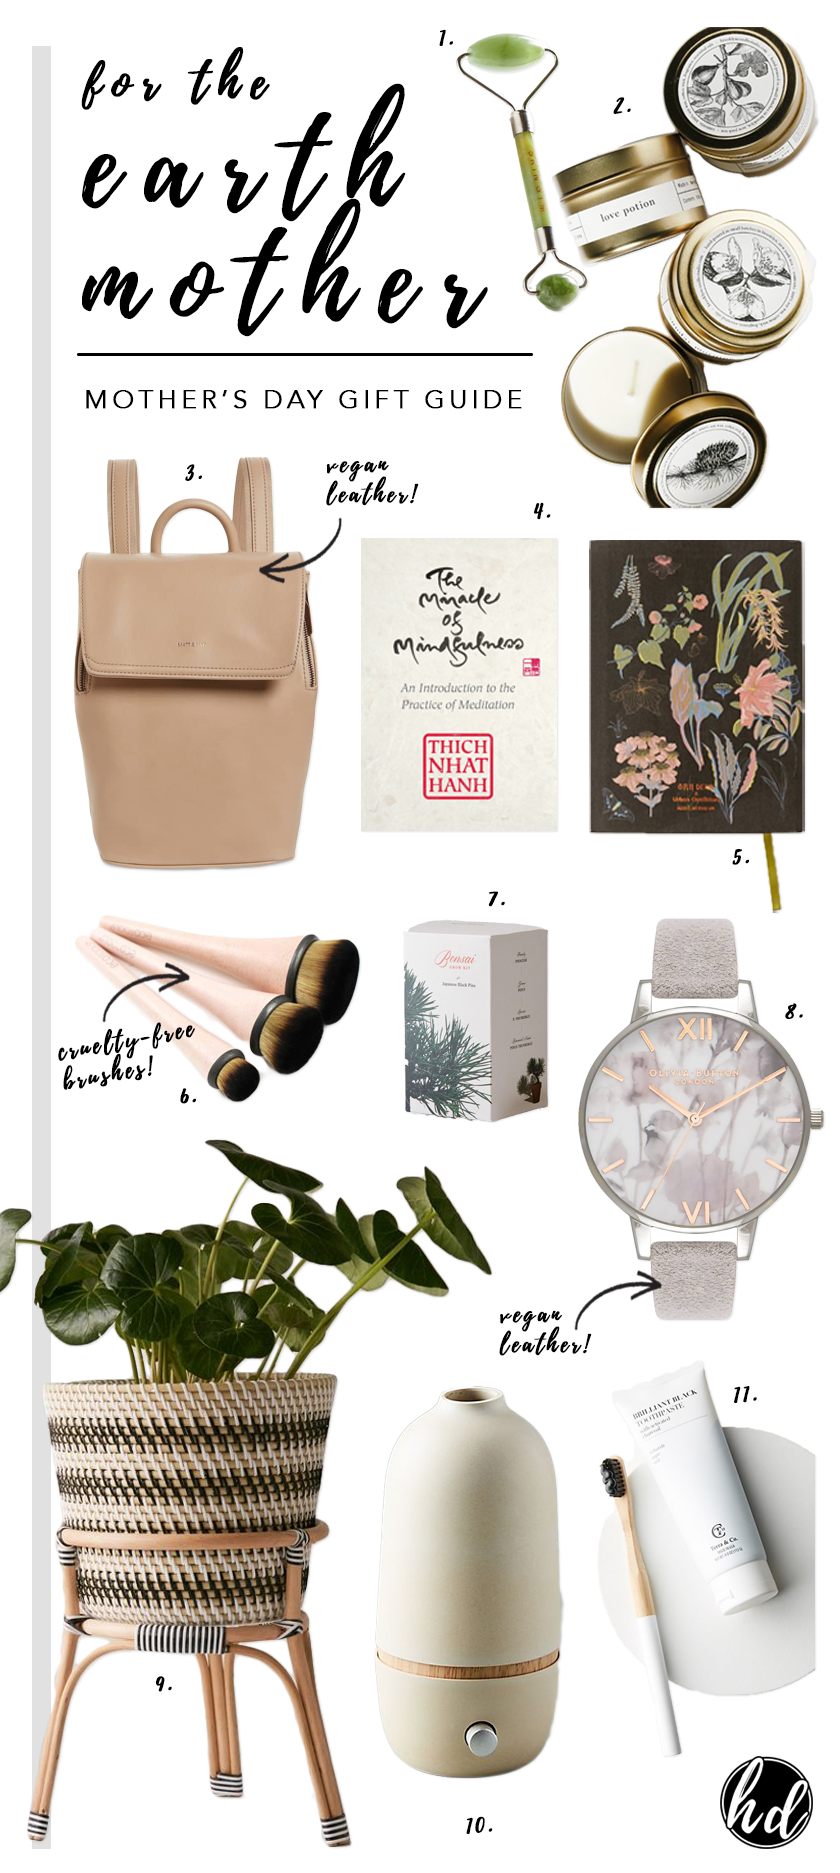 GIFT GUIDE: Eco-friendly Mother's Day Gift Ideas 2019 - Hey, Djangles. From cruelty-free beauty products and vegan leather goods to environmentally friendly self-care and wellness gifts, our 2019 Mother's Day Gift Guide has something for all the 'earth mother's' out there! Eco-friendly gift ideas, sustainable gift ideas, environmentally friendly gifts. #mothersday2019 #ecofriendlygifts #giftguide